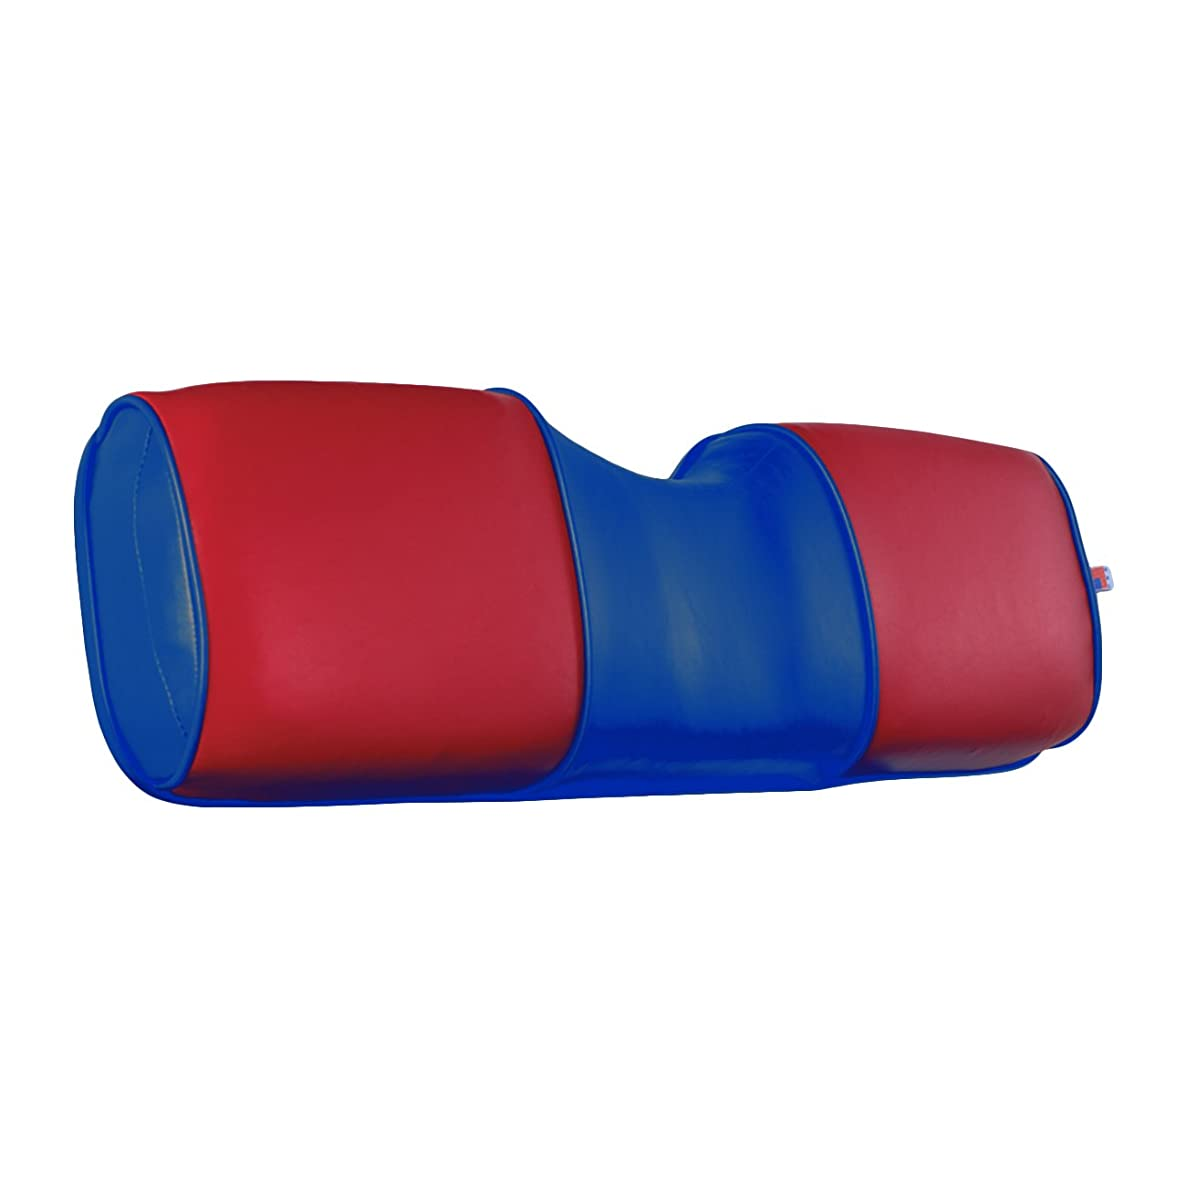 EZGO 604916G0302 Seat Back Cover for TXT/ST, Red on Blue